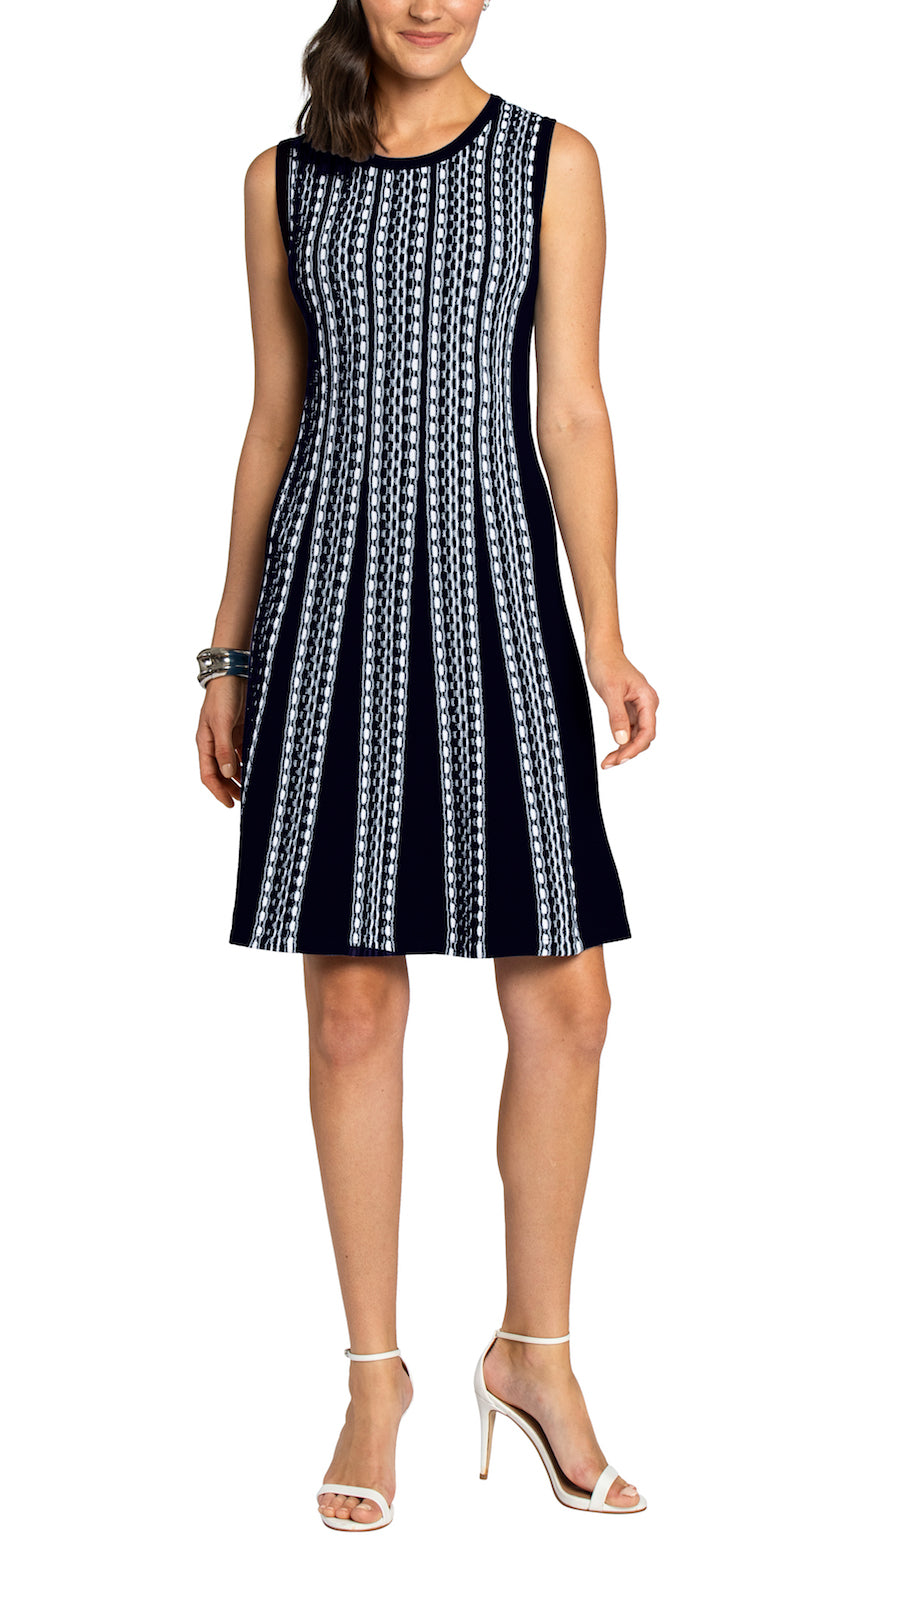 CONTEMPO Thyra Fit and Flare Knitted Dress, Navy/White